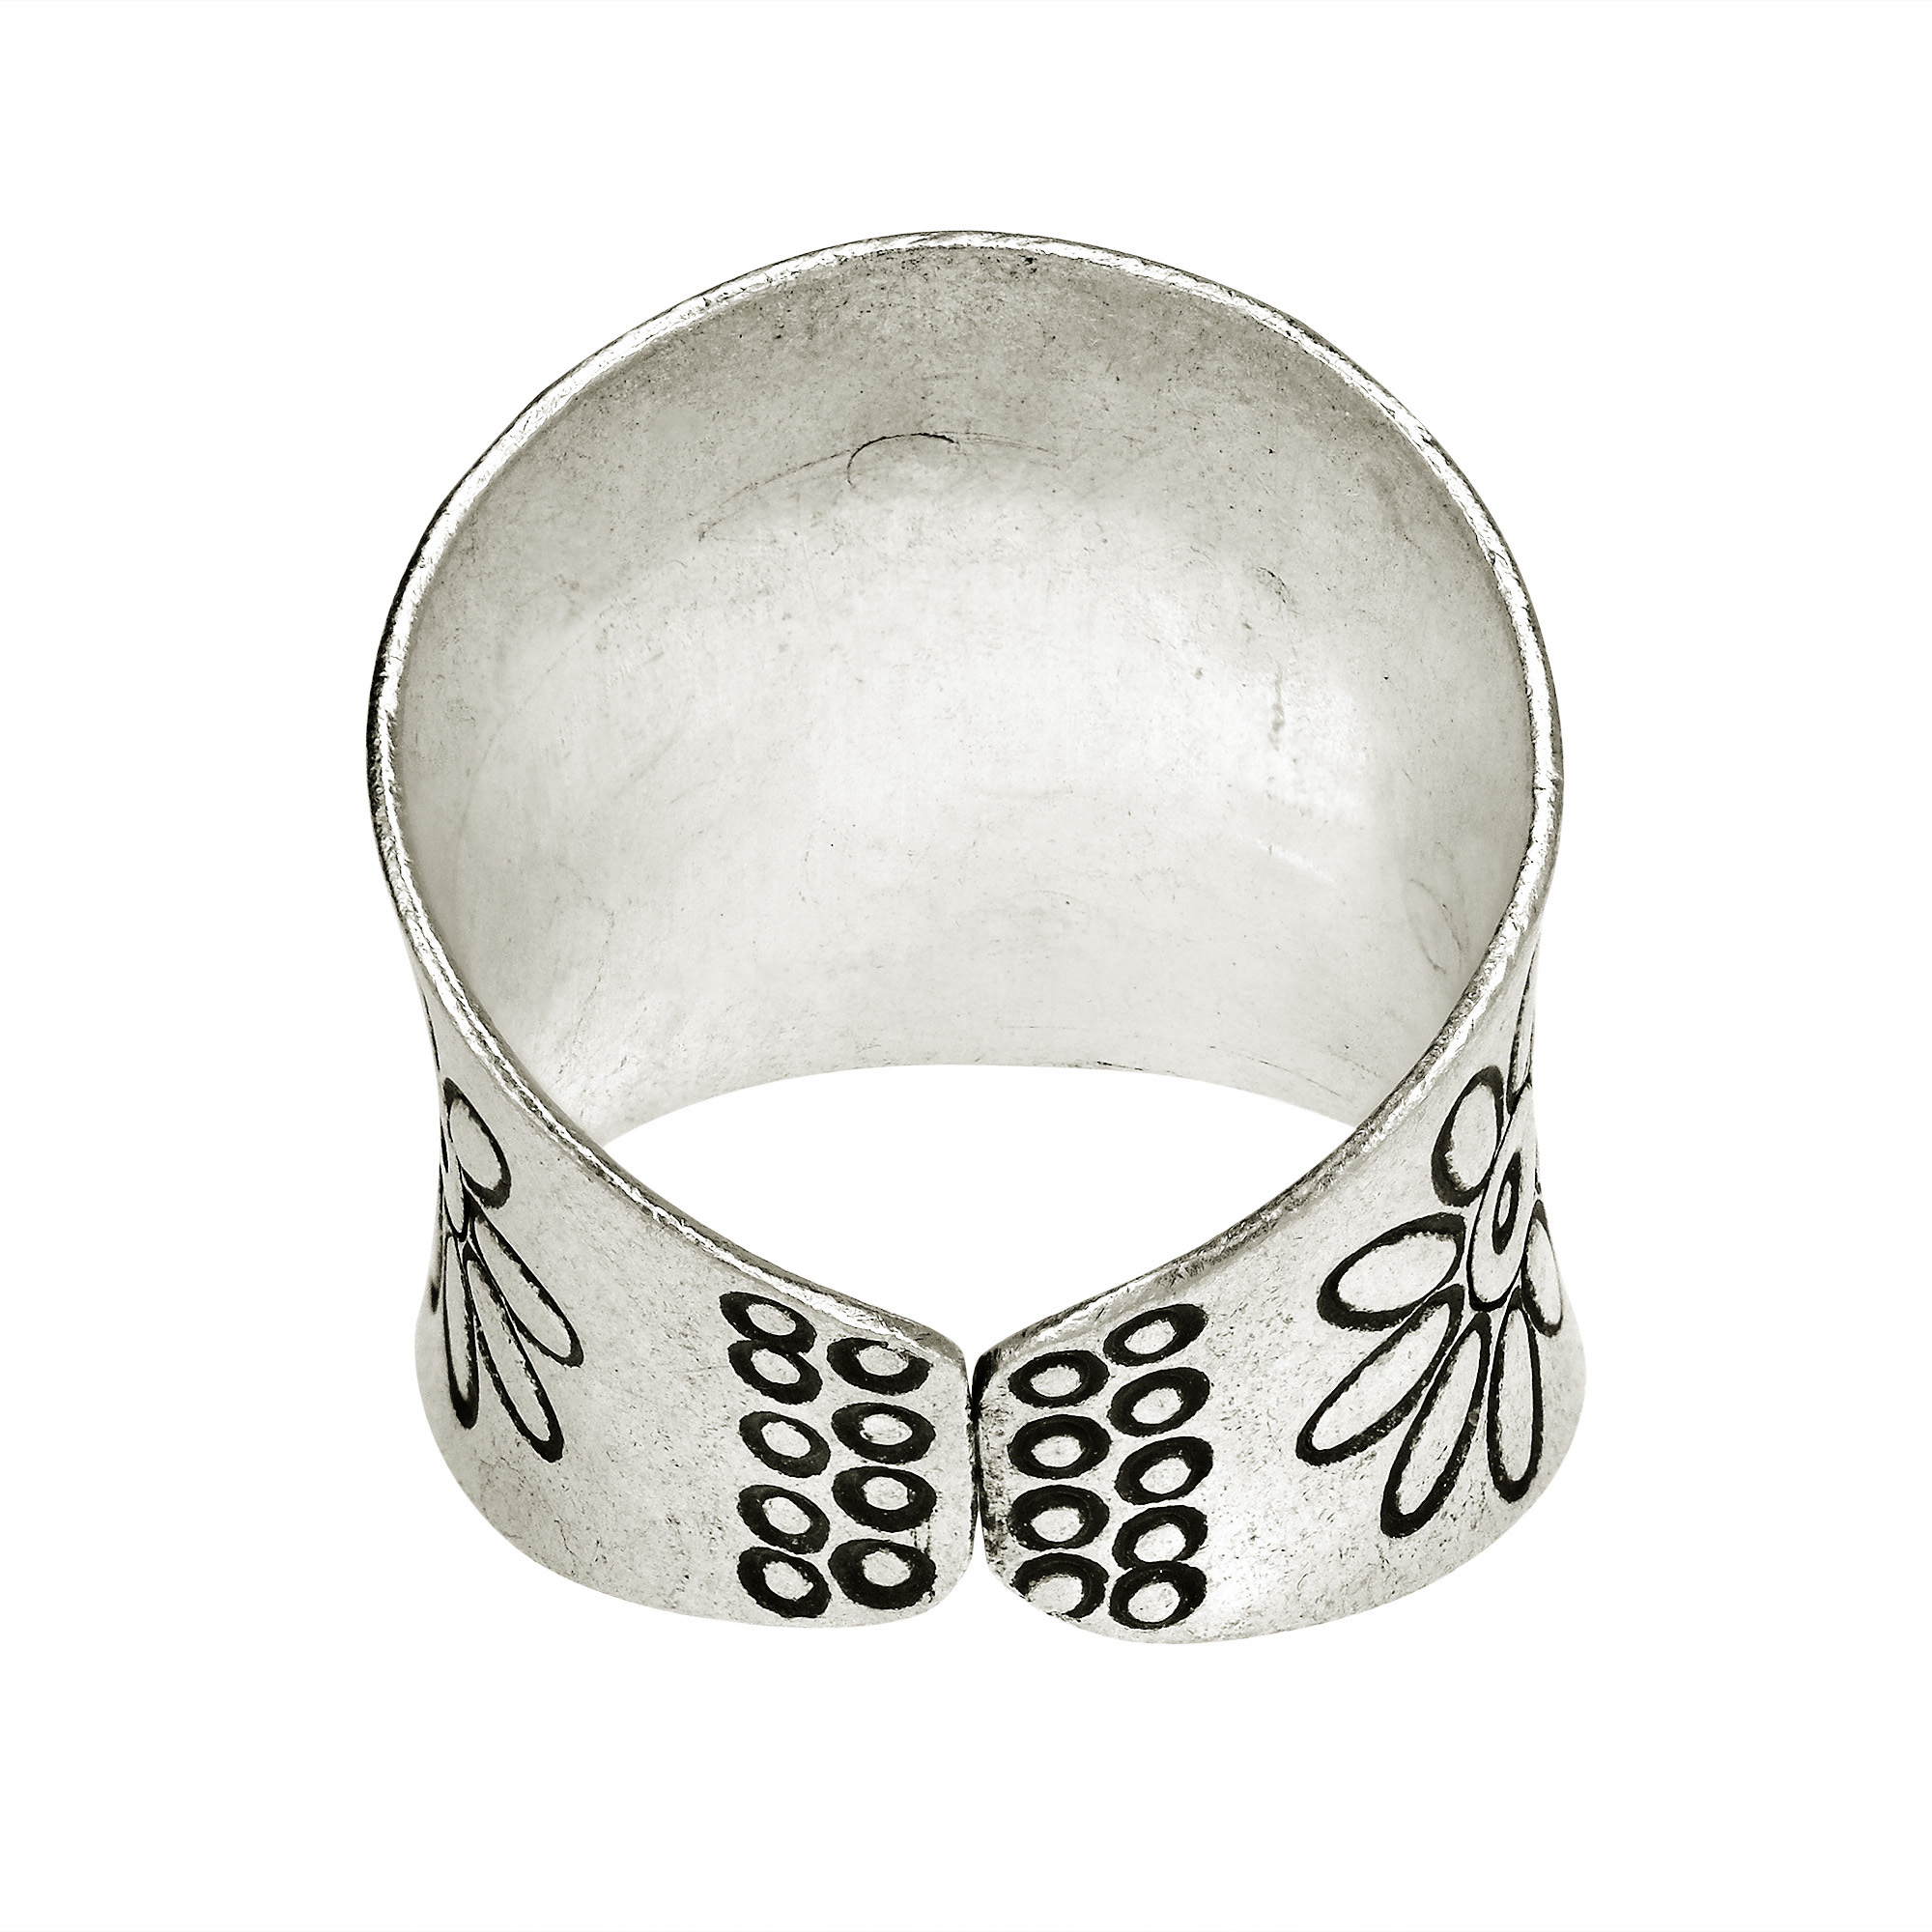 brush crafted products aeravida thailand ocean the tranquil artsy ring in rings her details kai plain wave patterns local artisan pr northern captivating satin like sb sterling waves workshop features oxidized this silver design